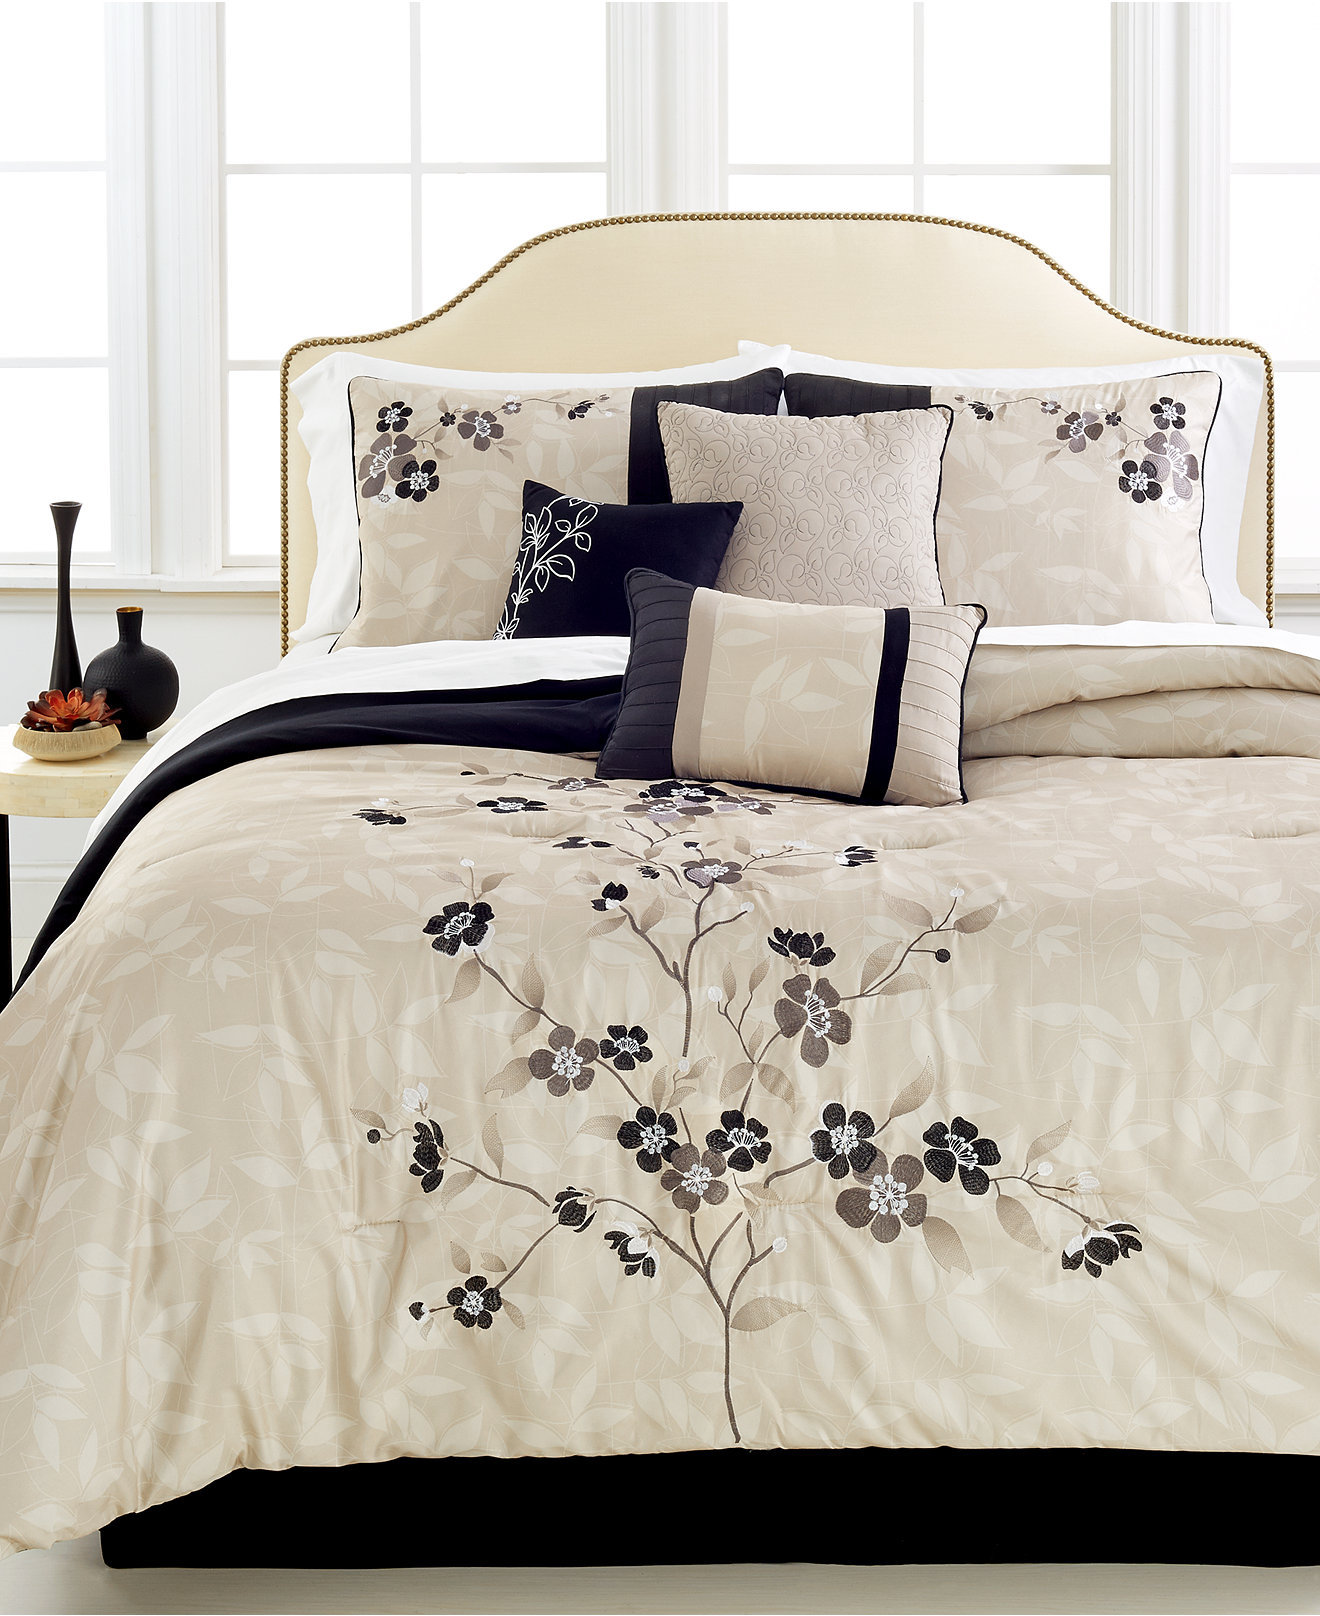 California King Bed Sets Walmart Waverly Dressed Up Damask Scalloped Quilt Set Walmart Com